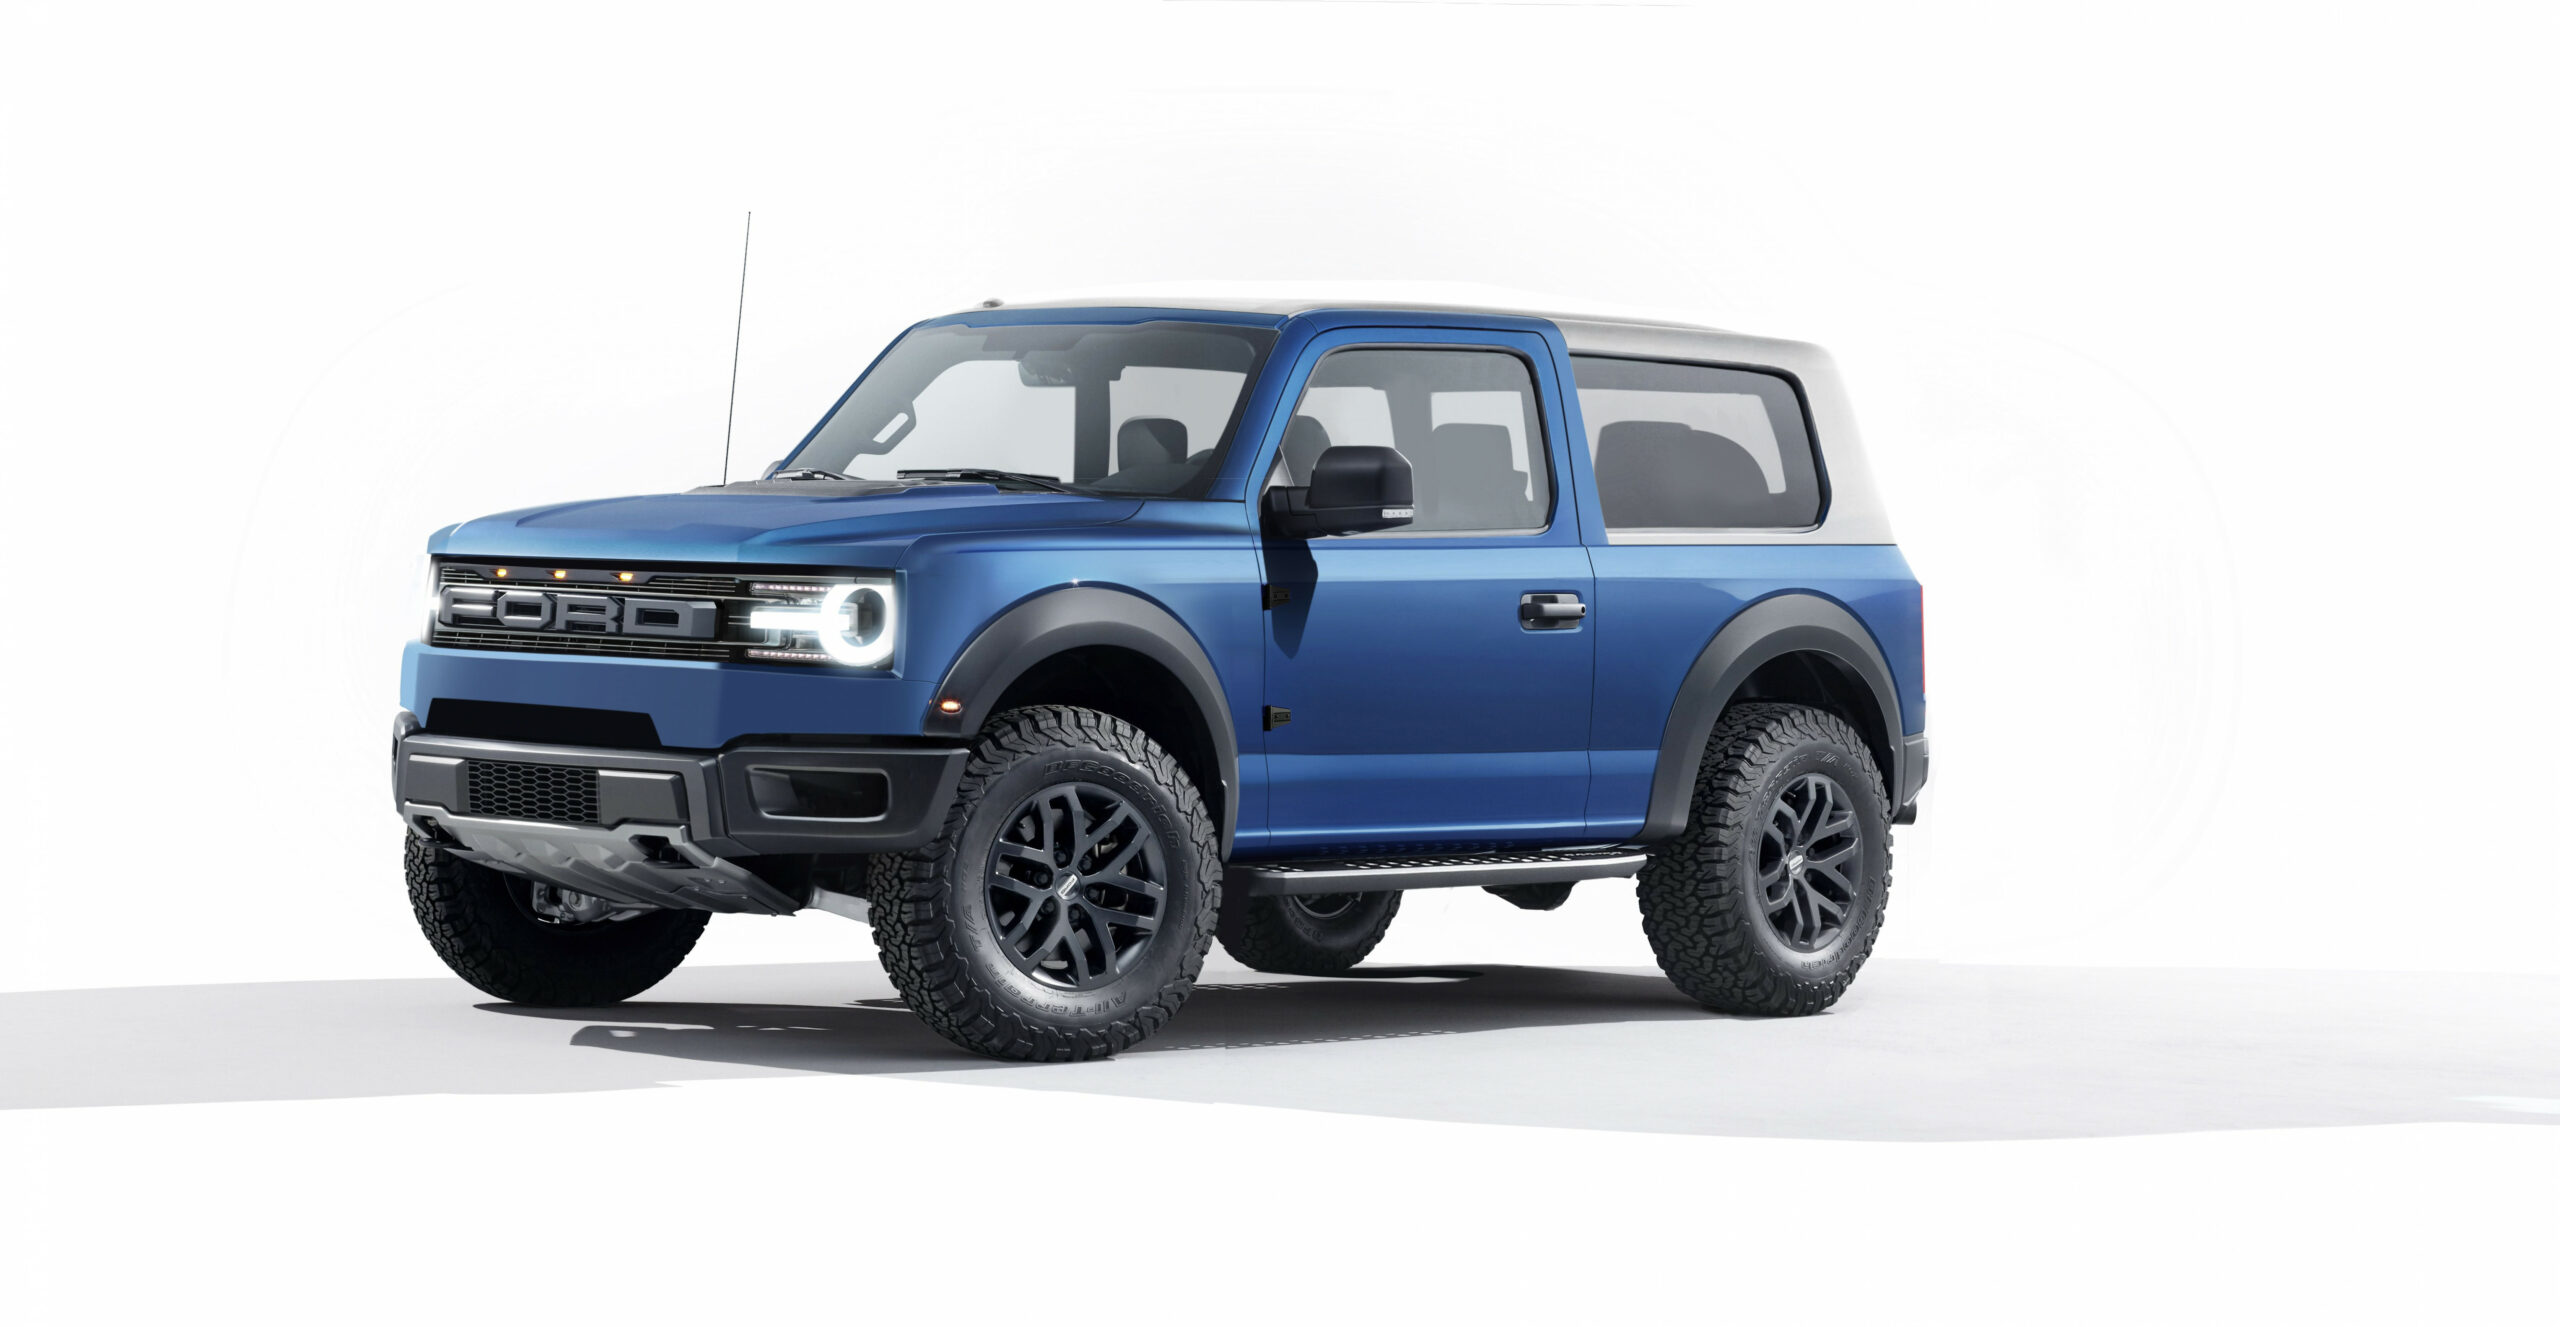 Redesign and Review Images Of 2022 Ford Bronco